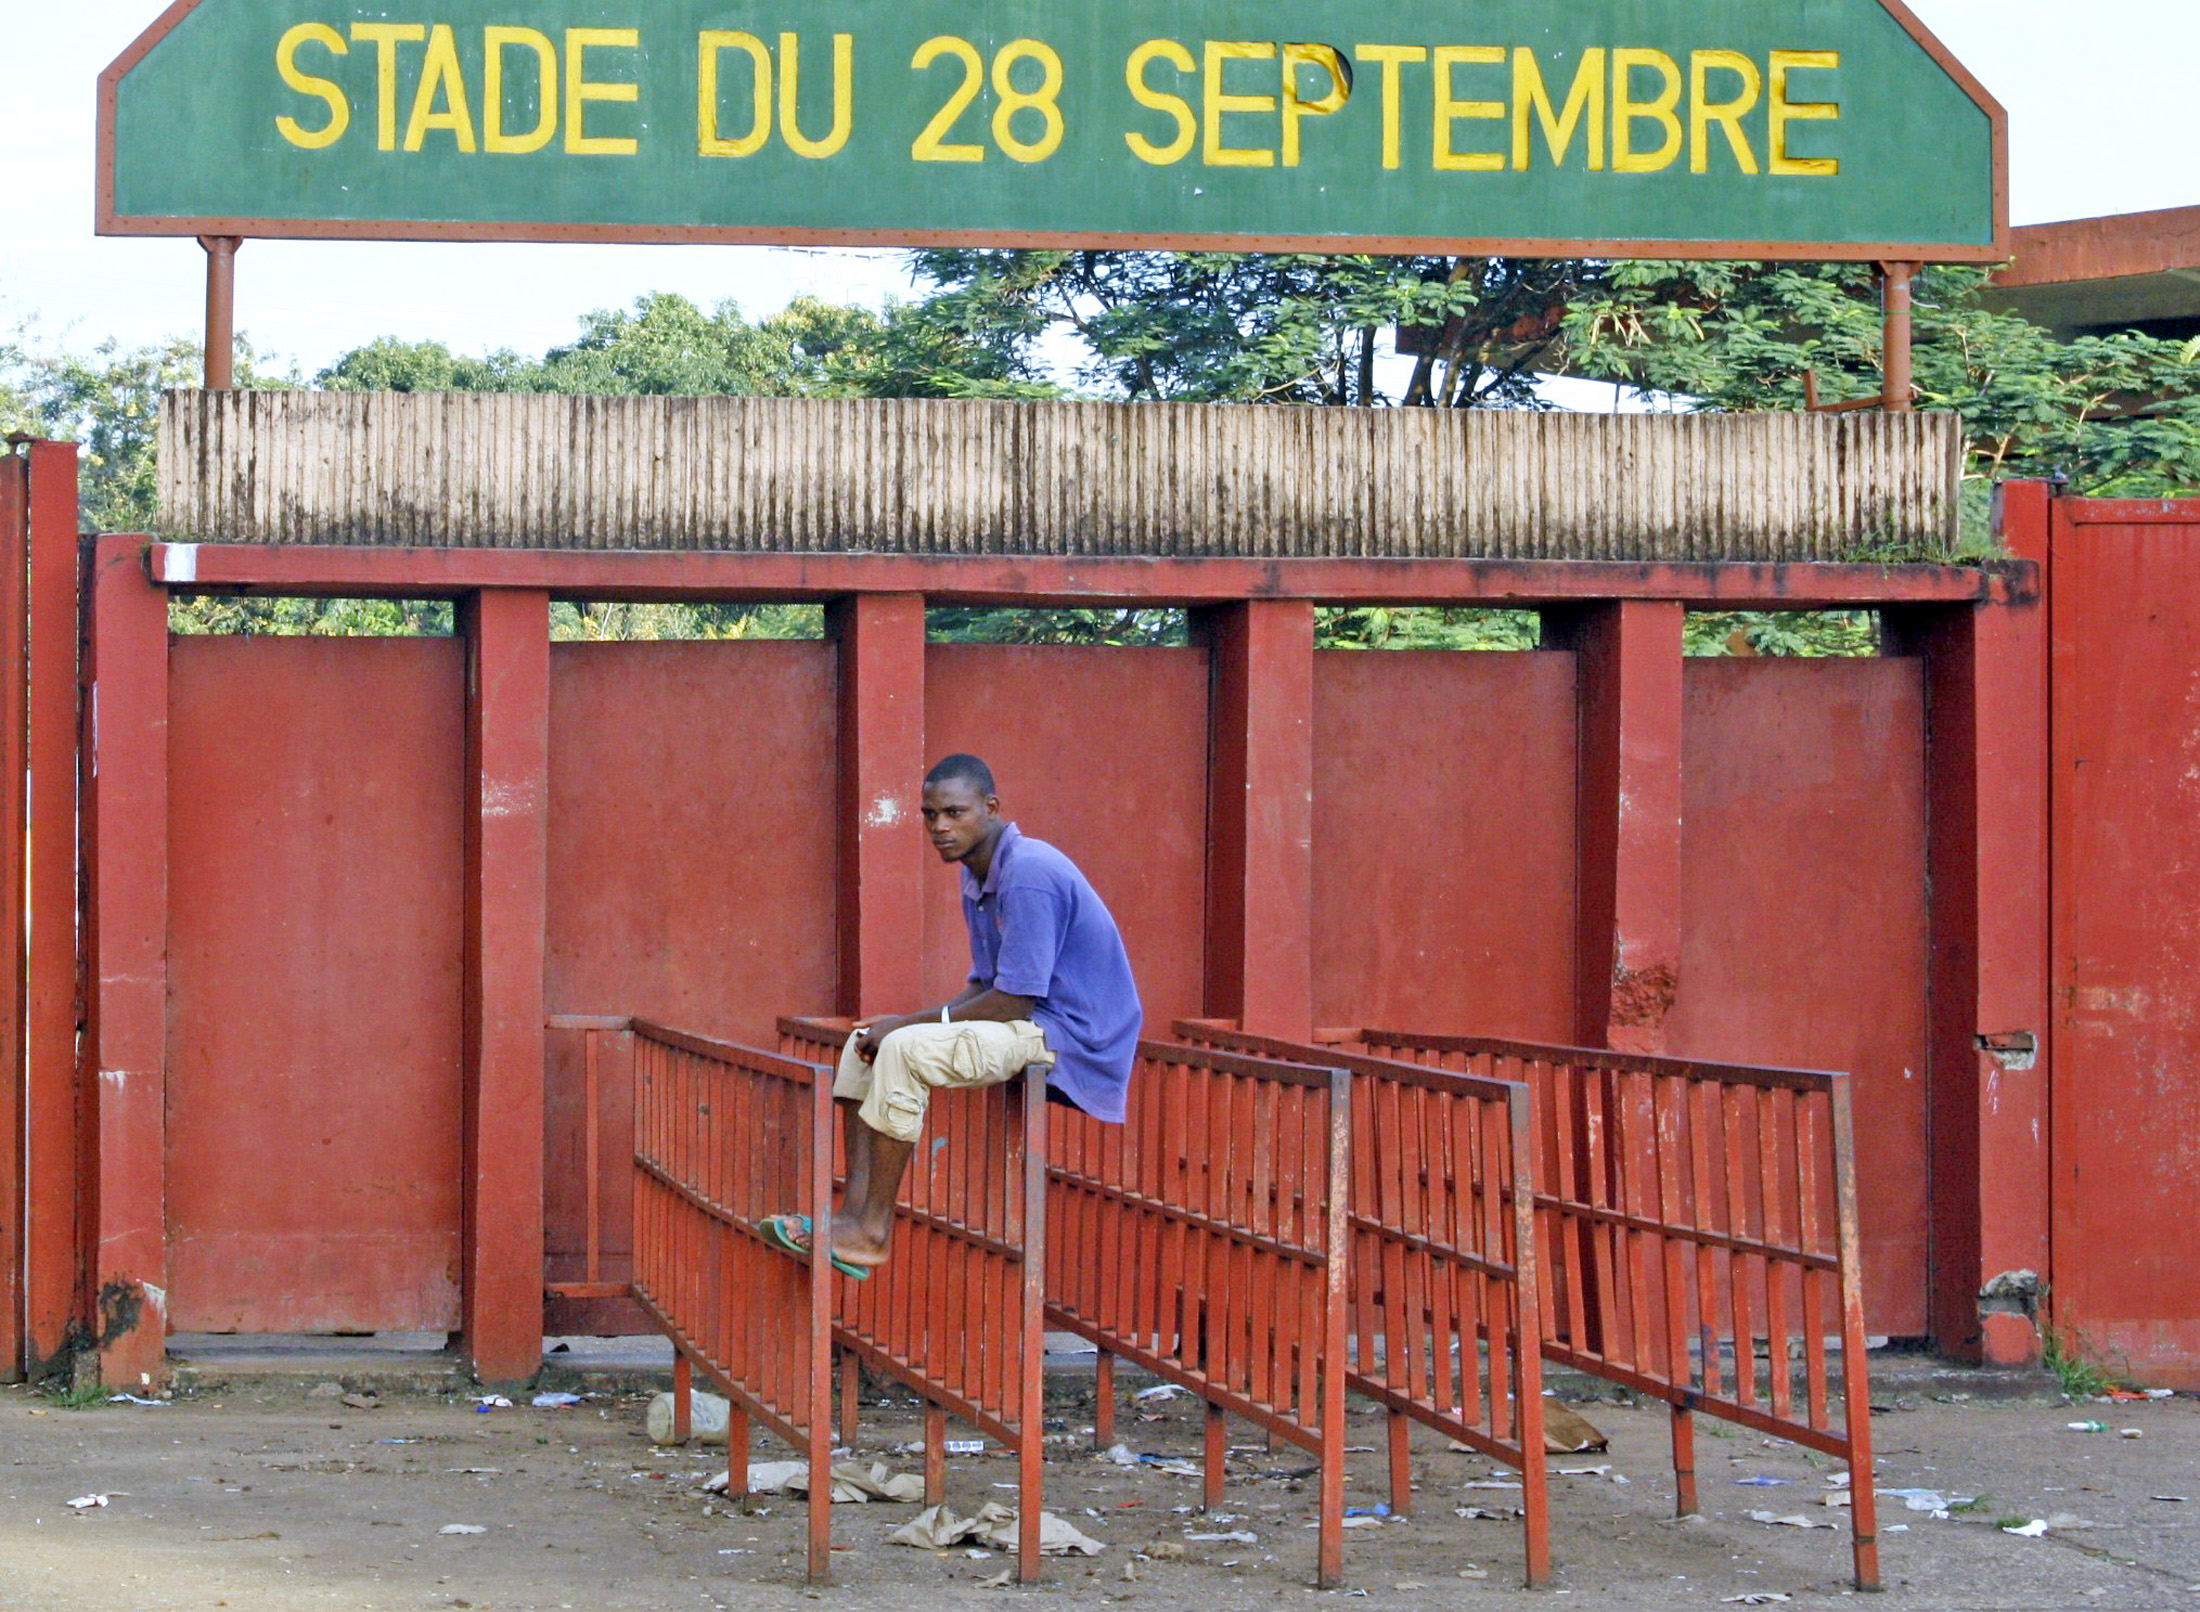 Hundreds of people were killed and injured, and hundreds of women raped at the 28 September Stadium in 2009